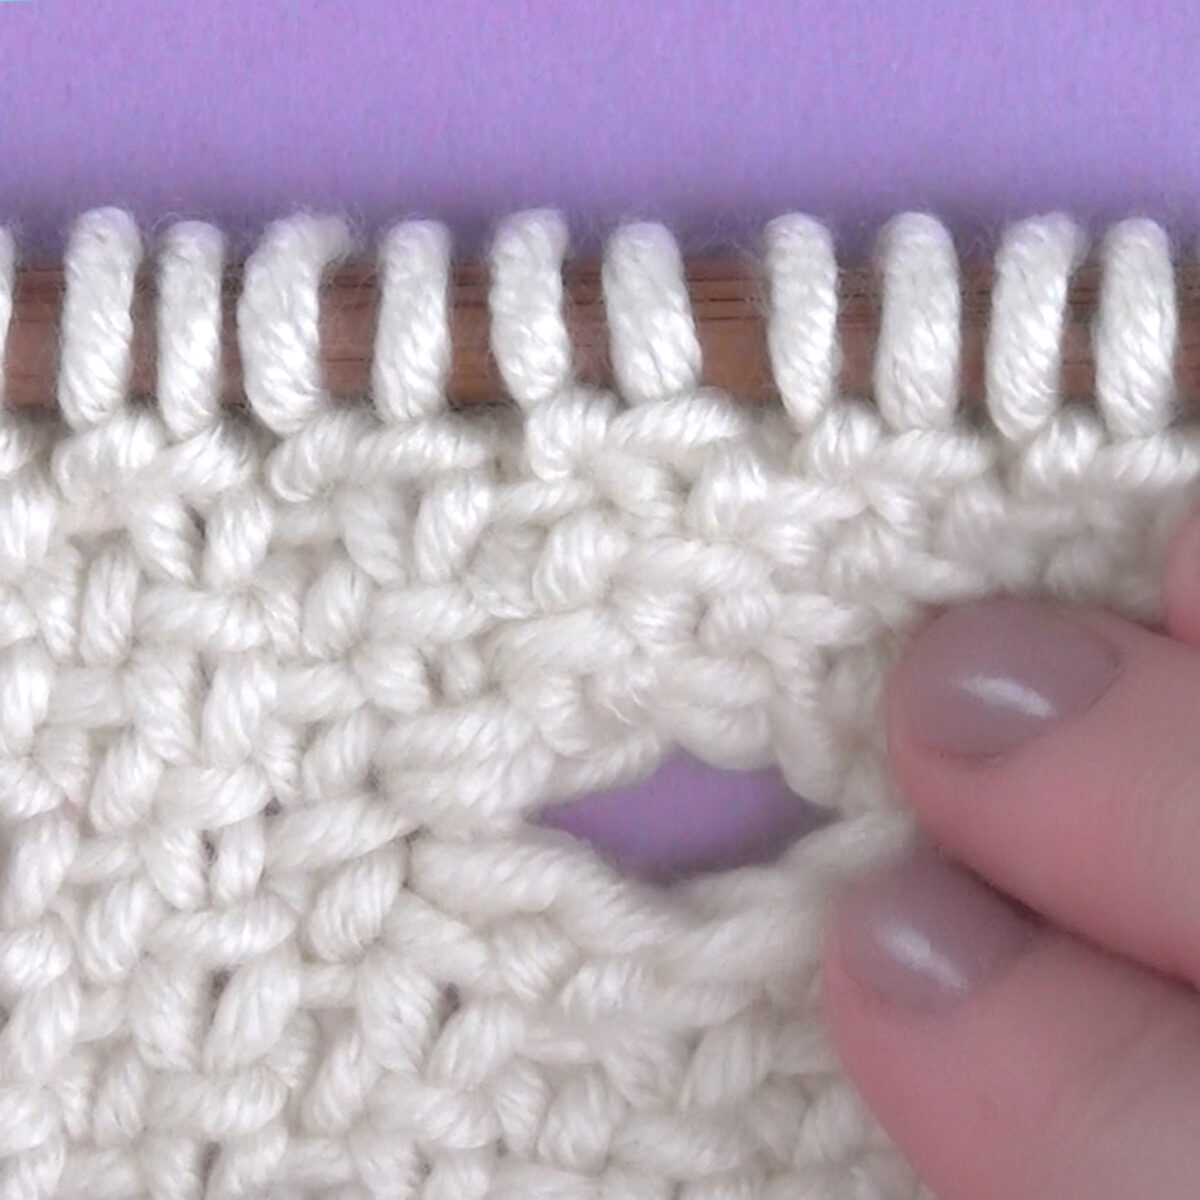 Knitted swatch in white yarn with buttonhole opening on a knitting needle with woman's hand.